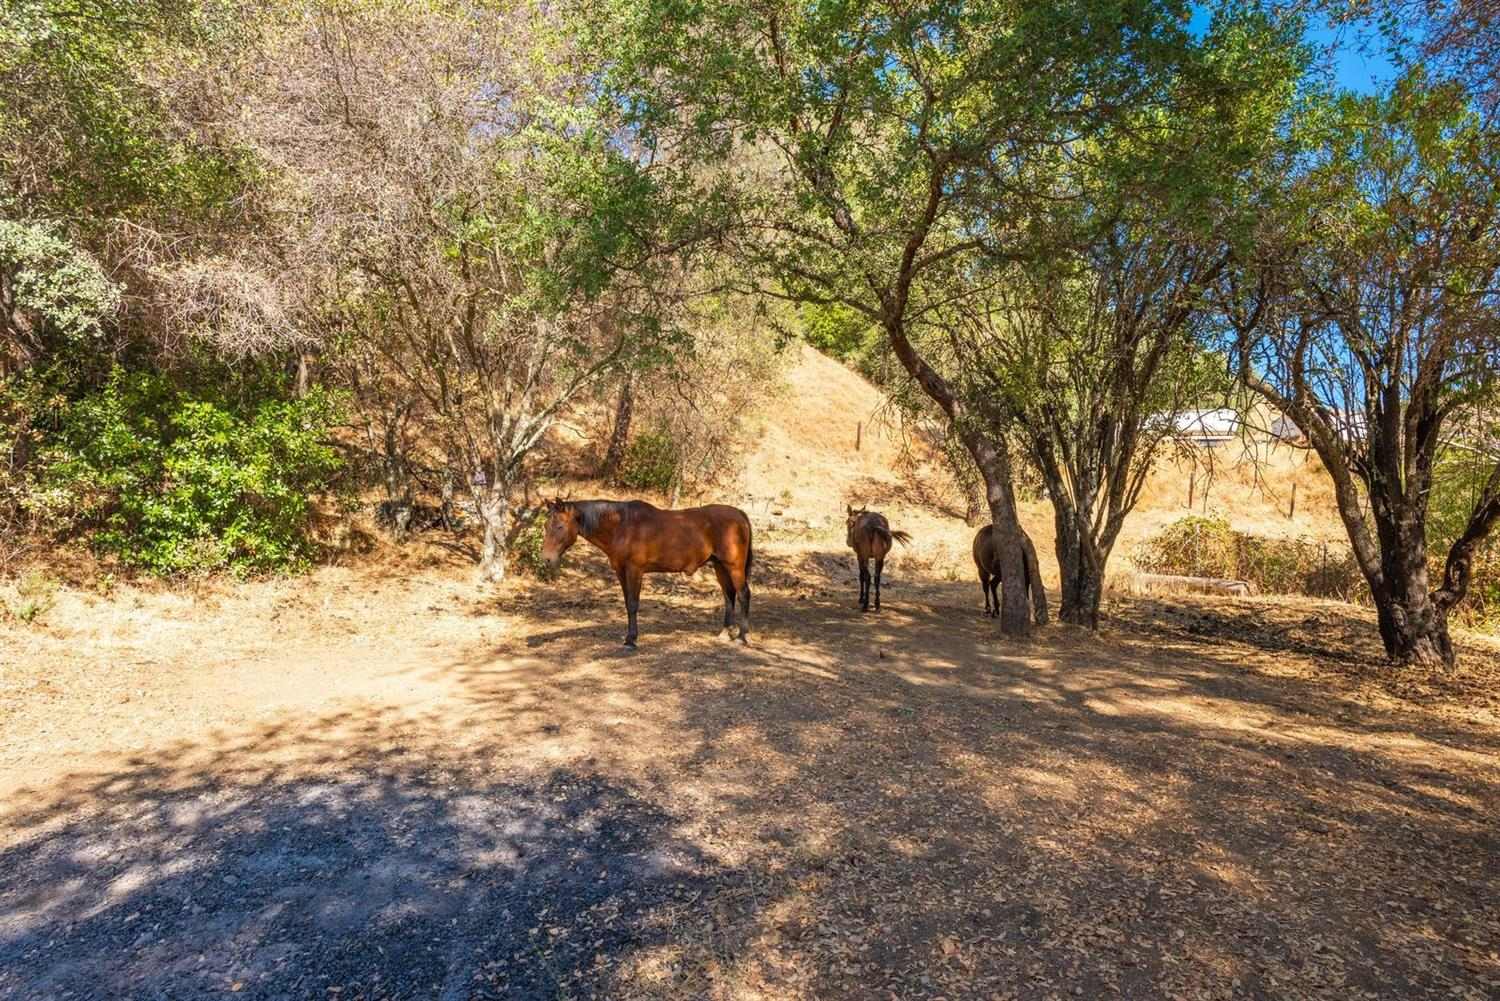 Amazing property with so much potential! 2.9 acres of usable and level land. Beautiful views from different locations of the property. Walking distance to Main Street, where you can shop, dine and wine taste! Private location with all of the conveniences close by.